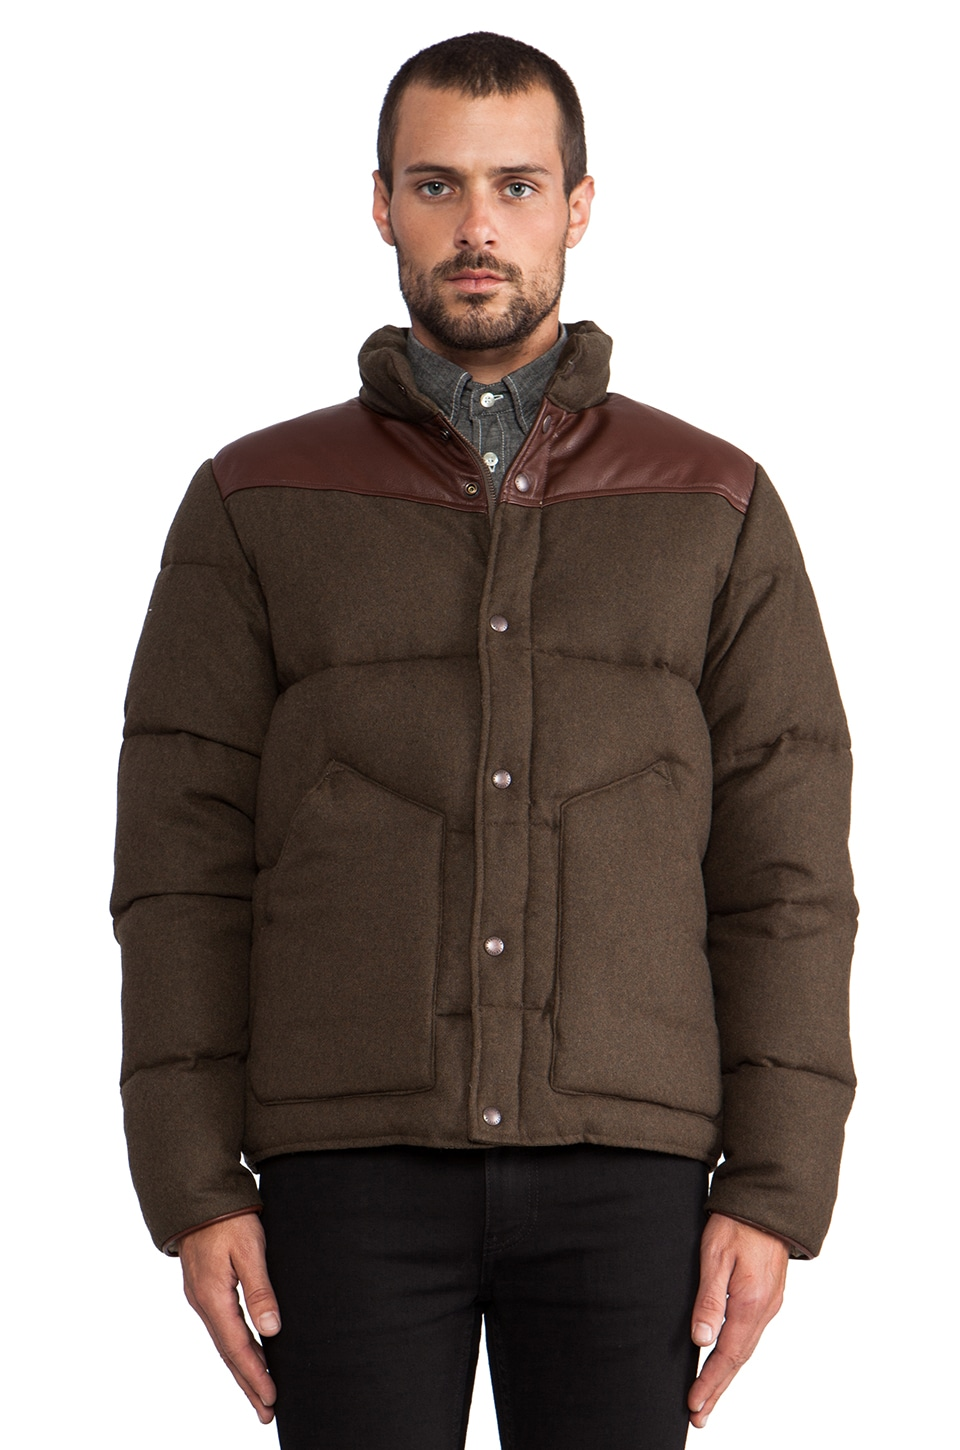 Penfield Blue Label Gillman Melton Insulated Jacket in Olive Drab